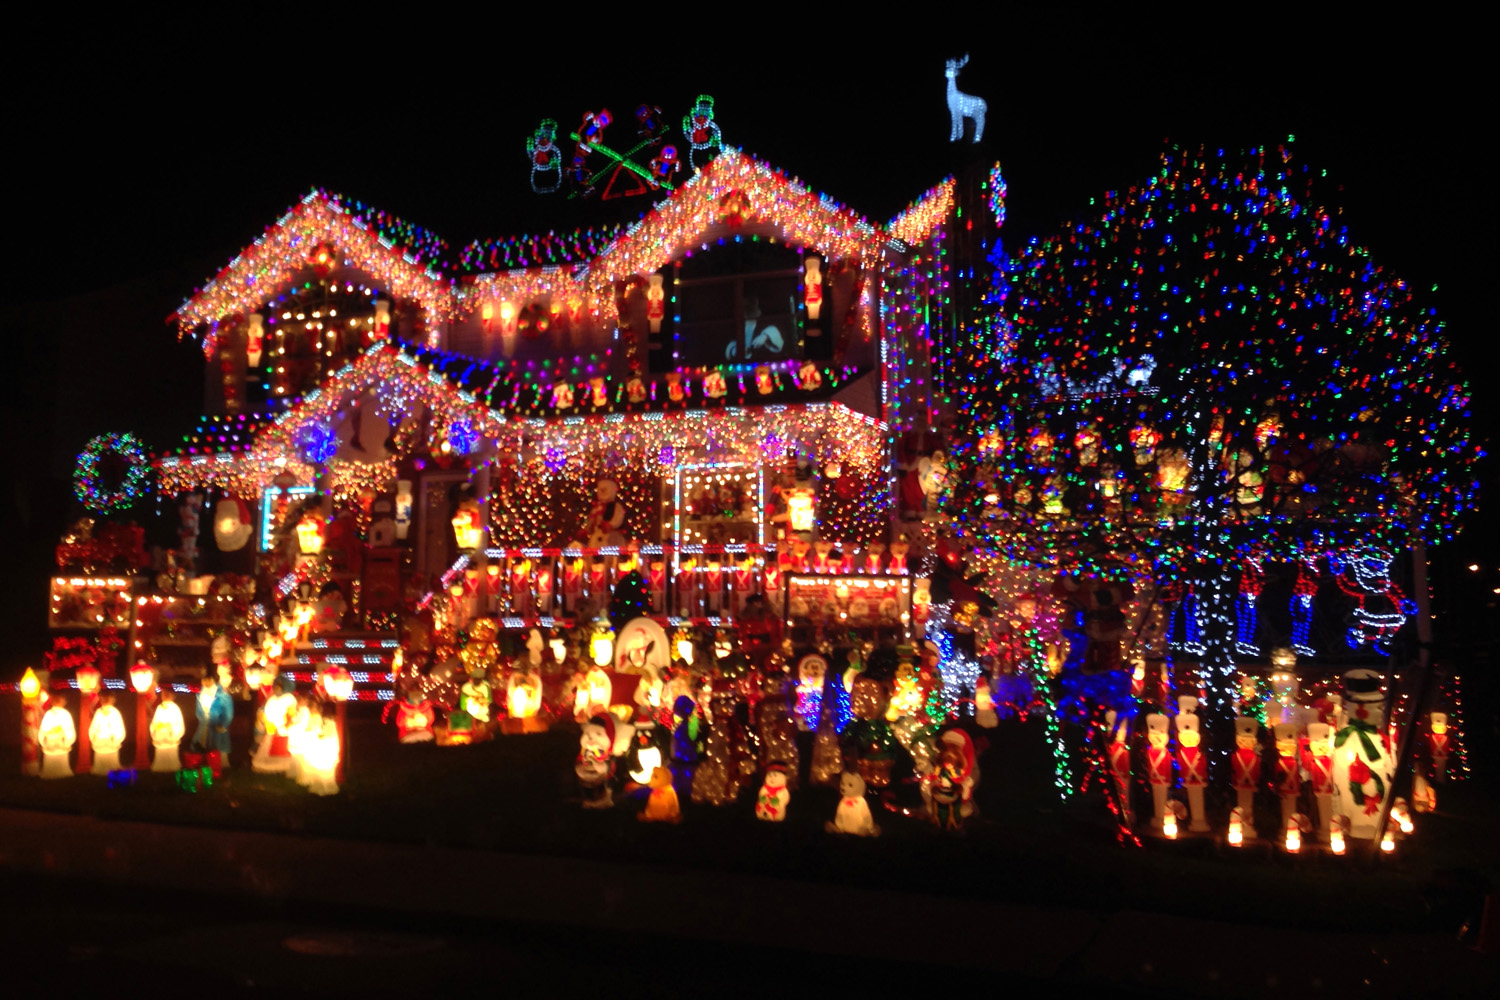 Christmas lights in a minute abidan paul shah Holiday decorated homes